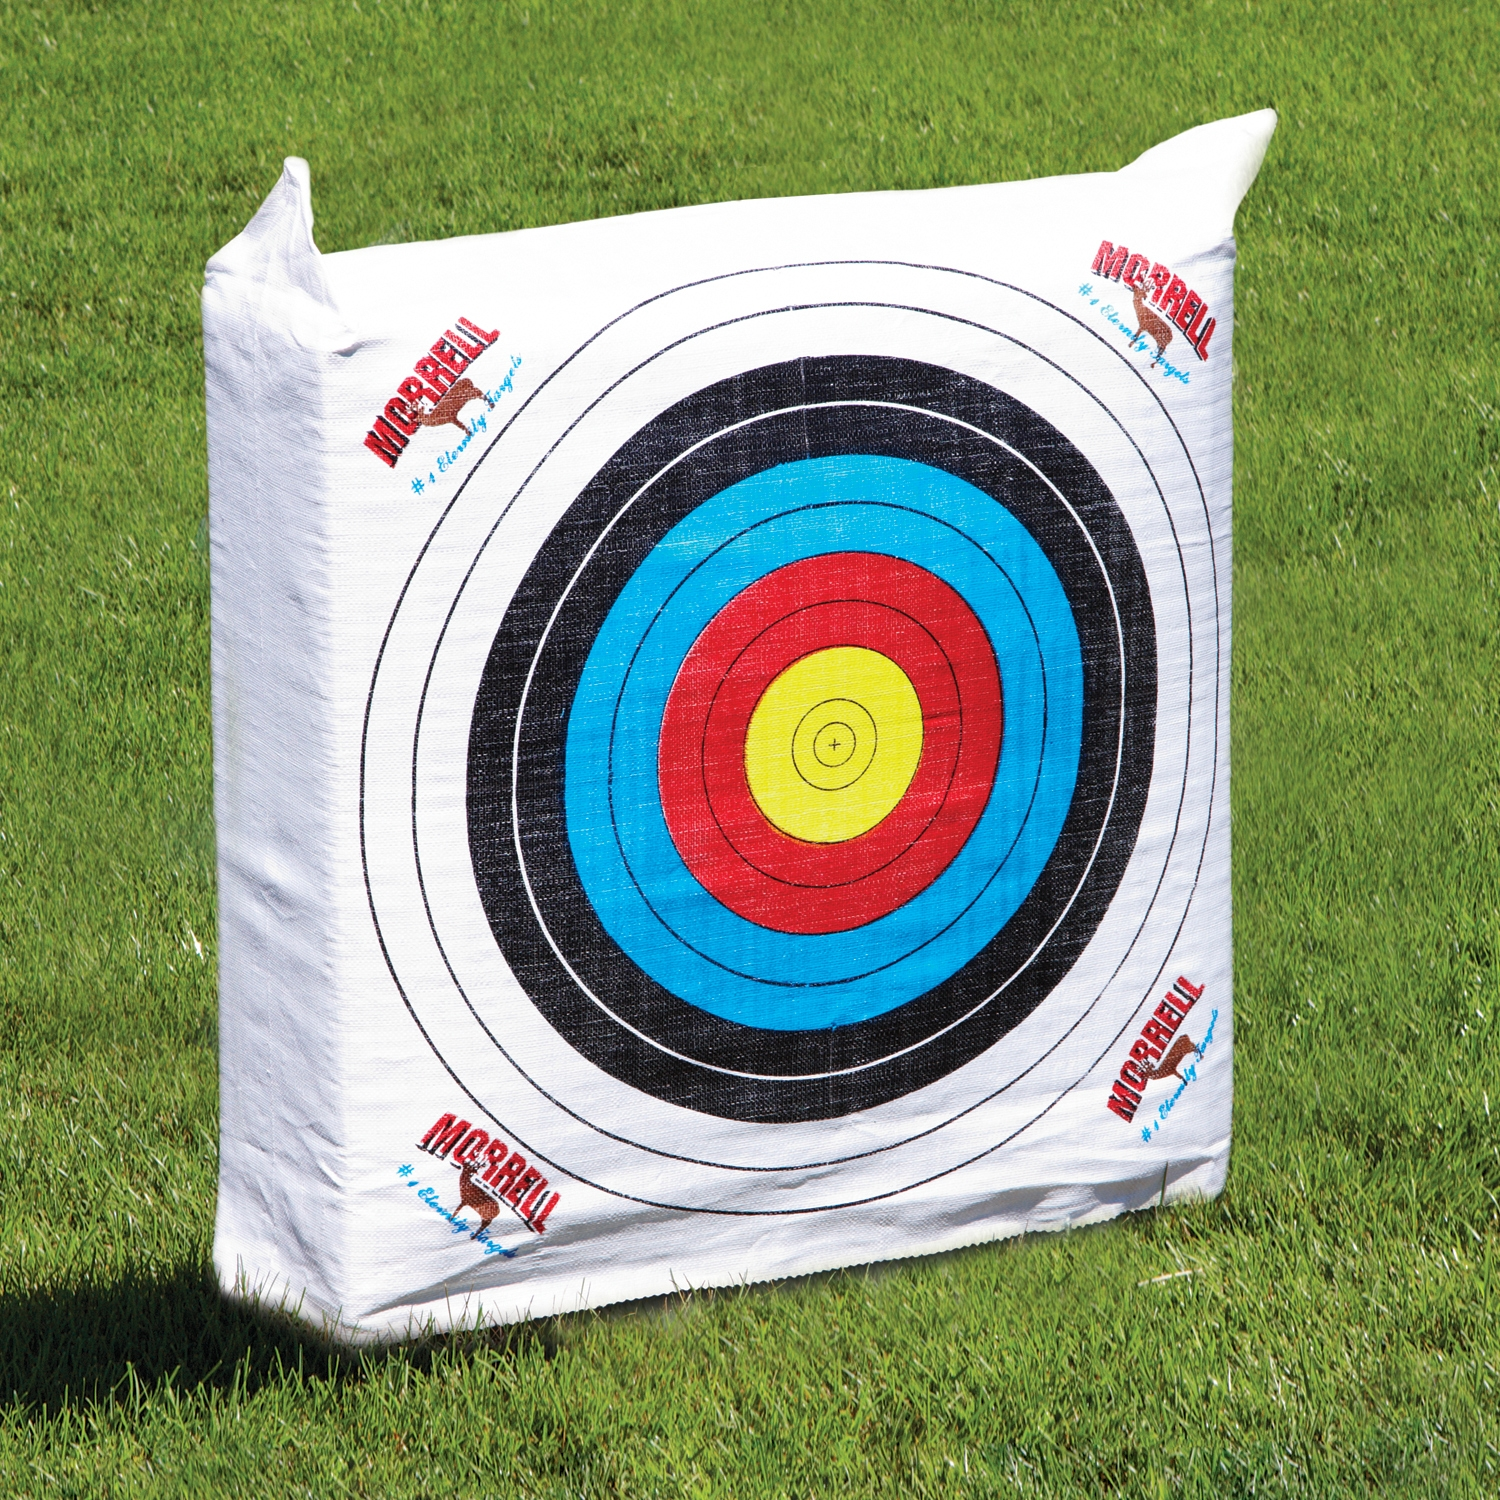 Official NASP archery target for schools